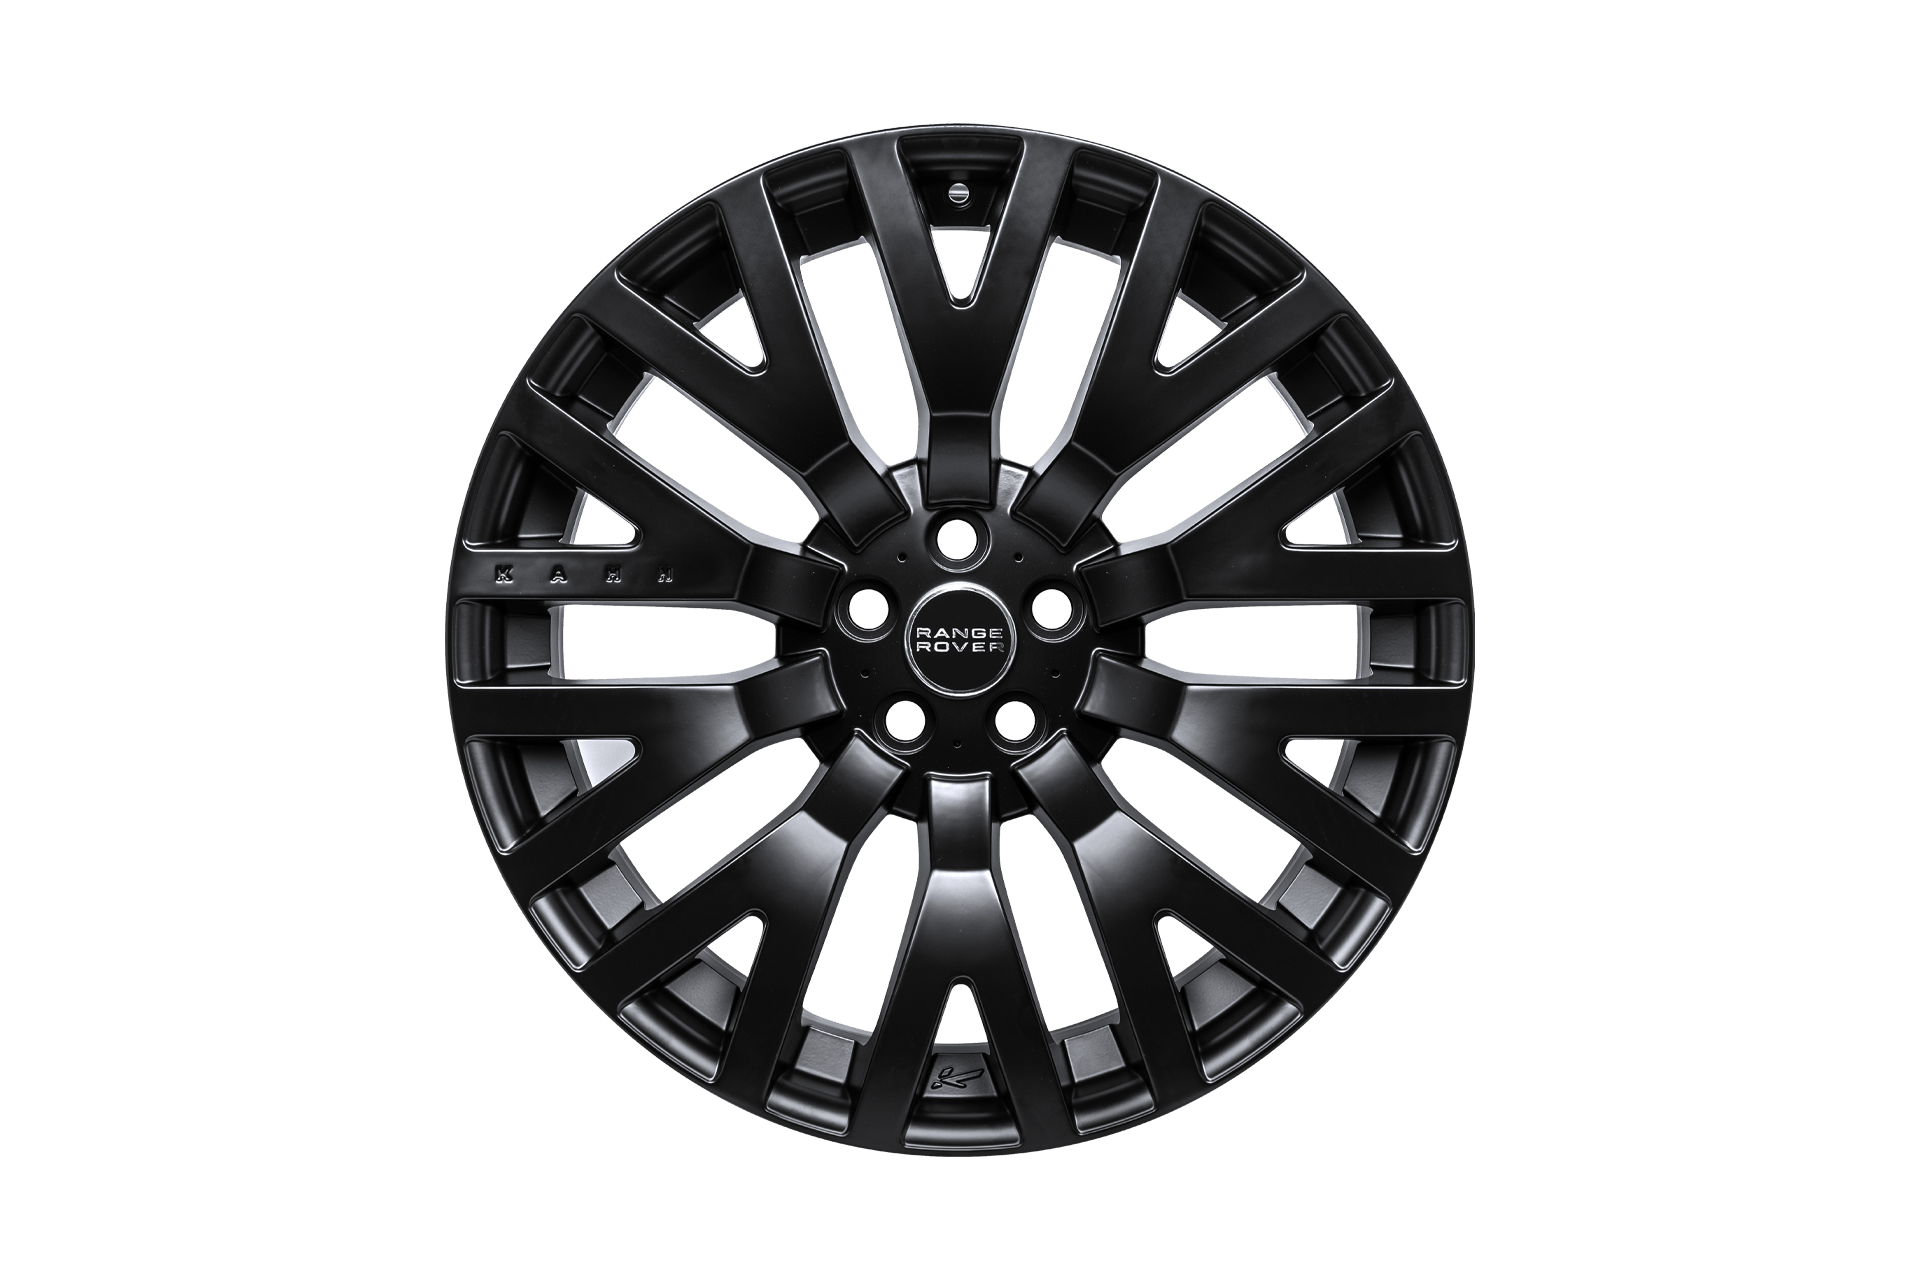 Range Rover Sport (2015-2018) Svr Rs Light Alloy Wheels by Kahn - Image 3492